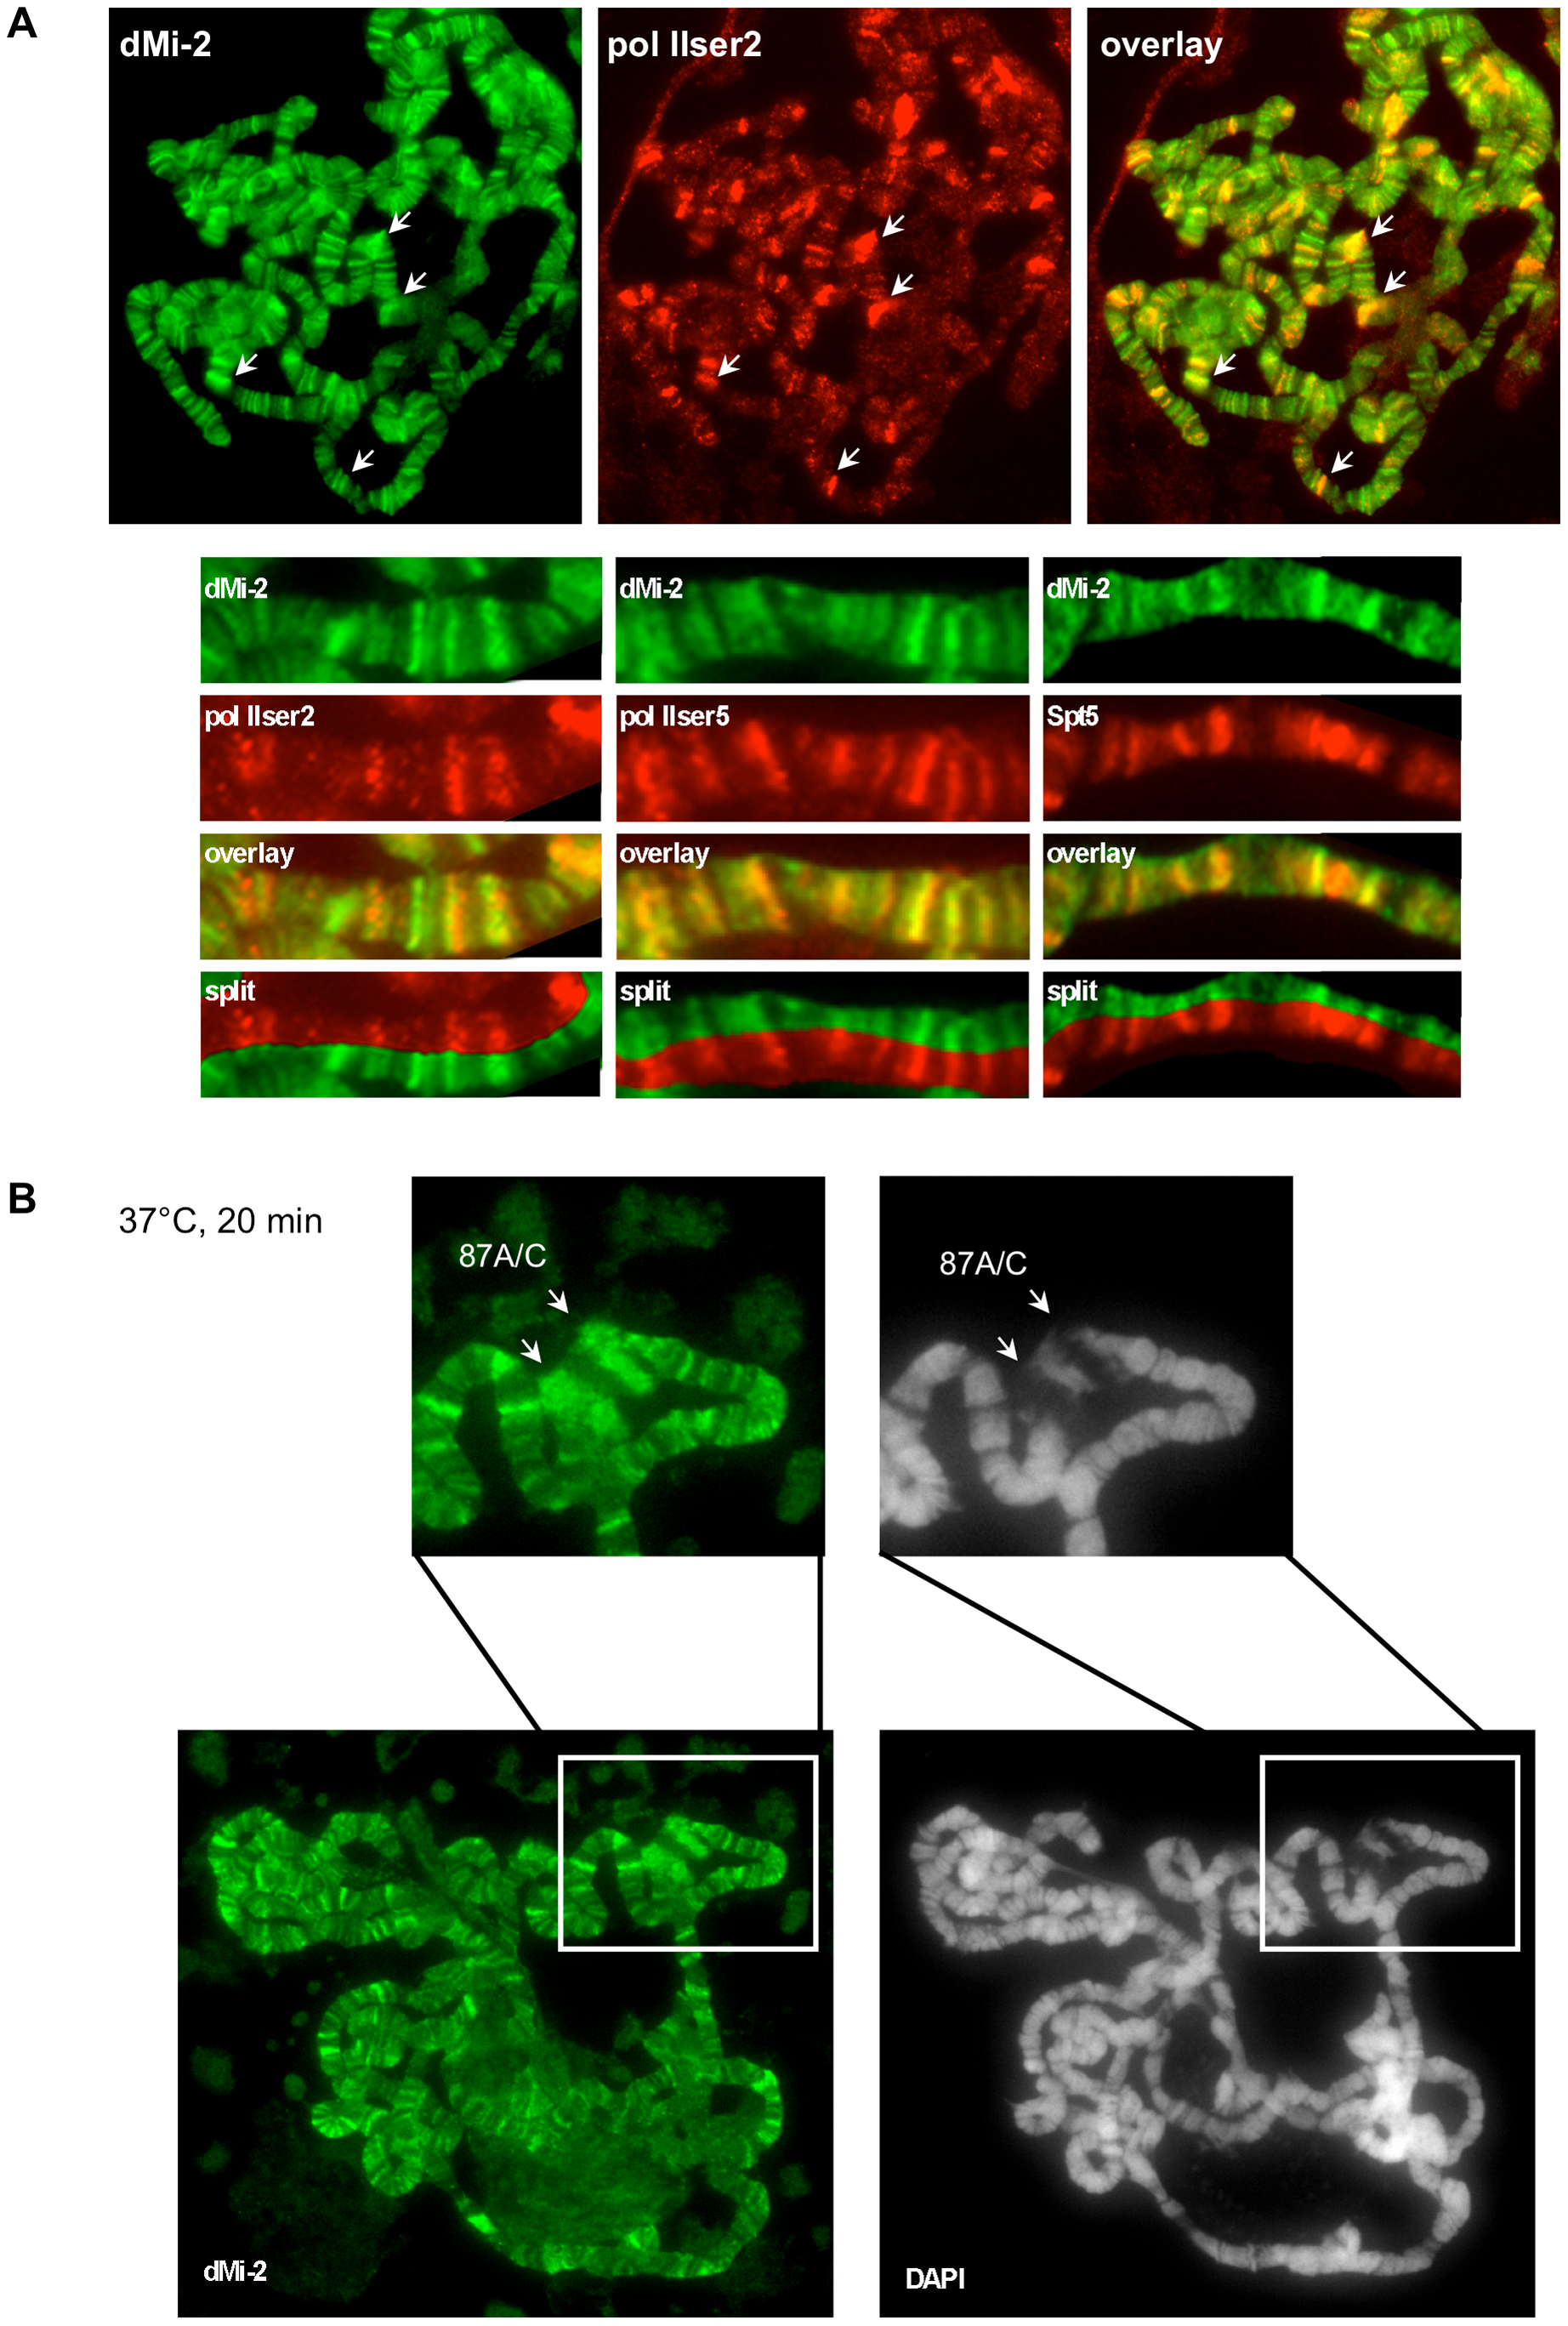 dMi-2 is recruited to HS genes.